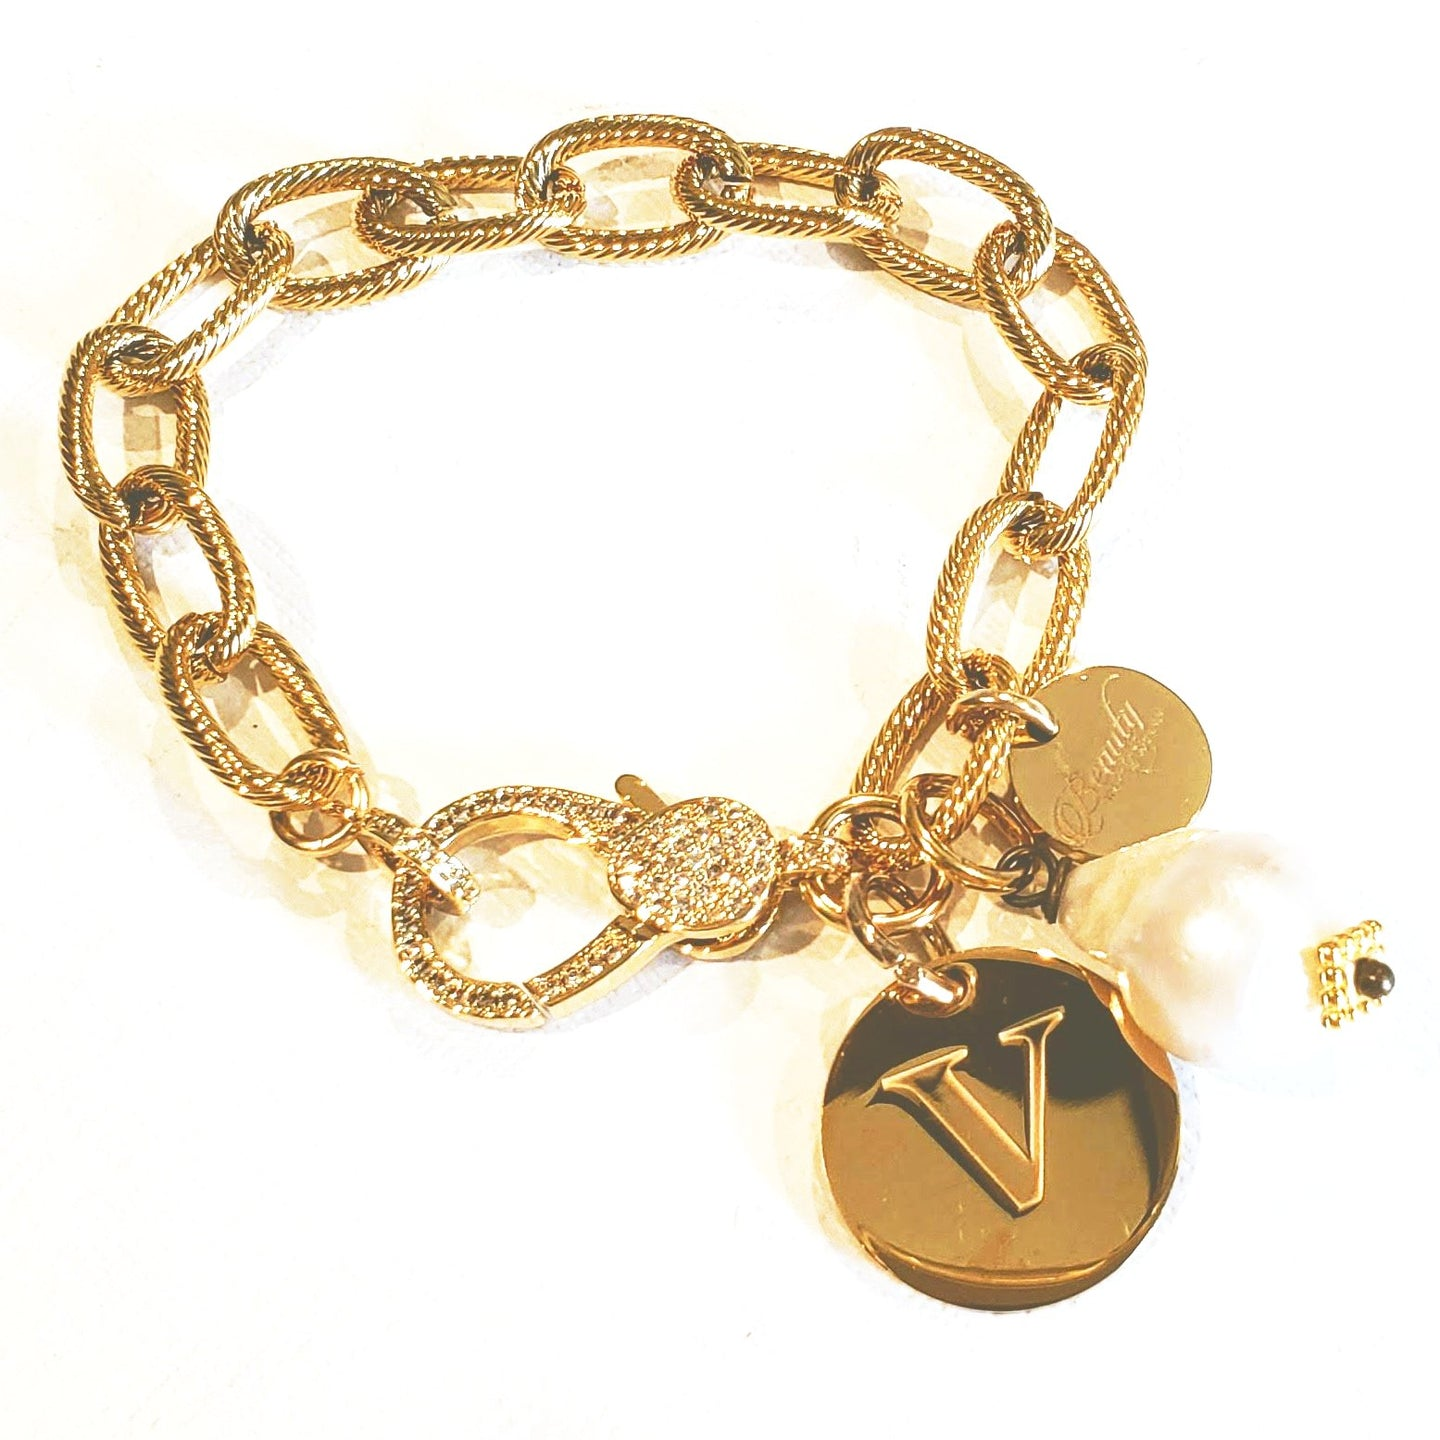 Chain bracelet with engravable charm